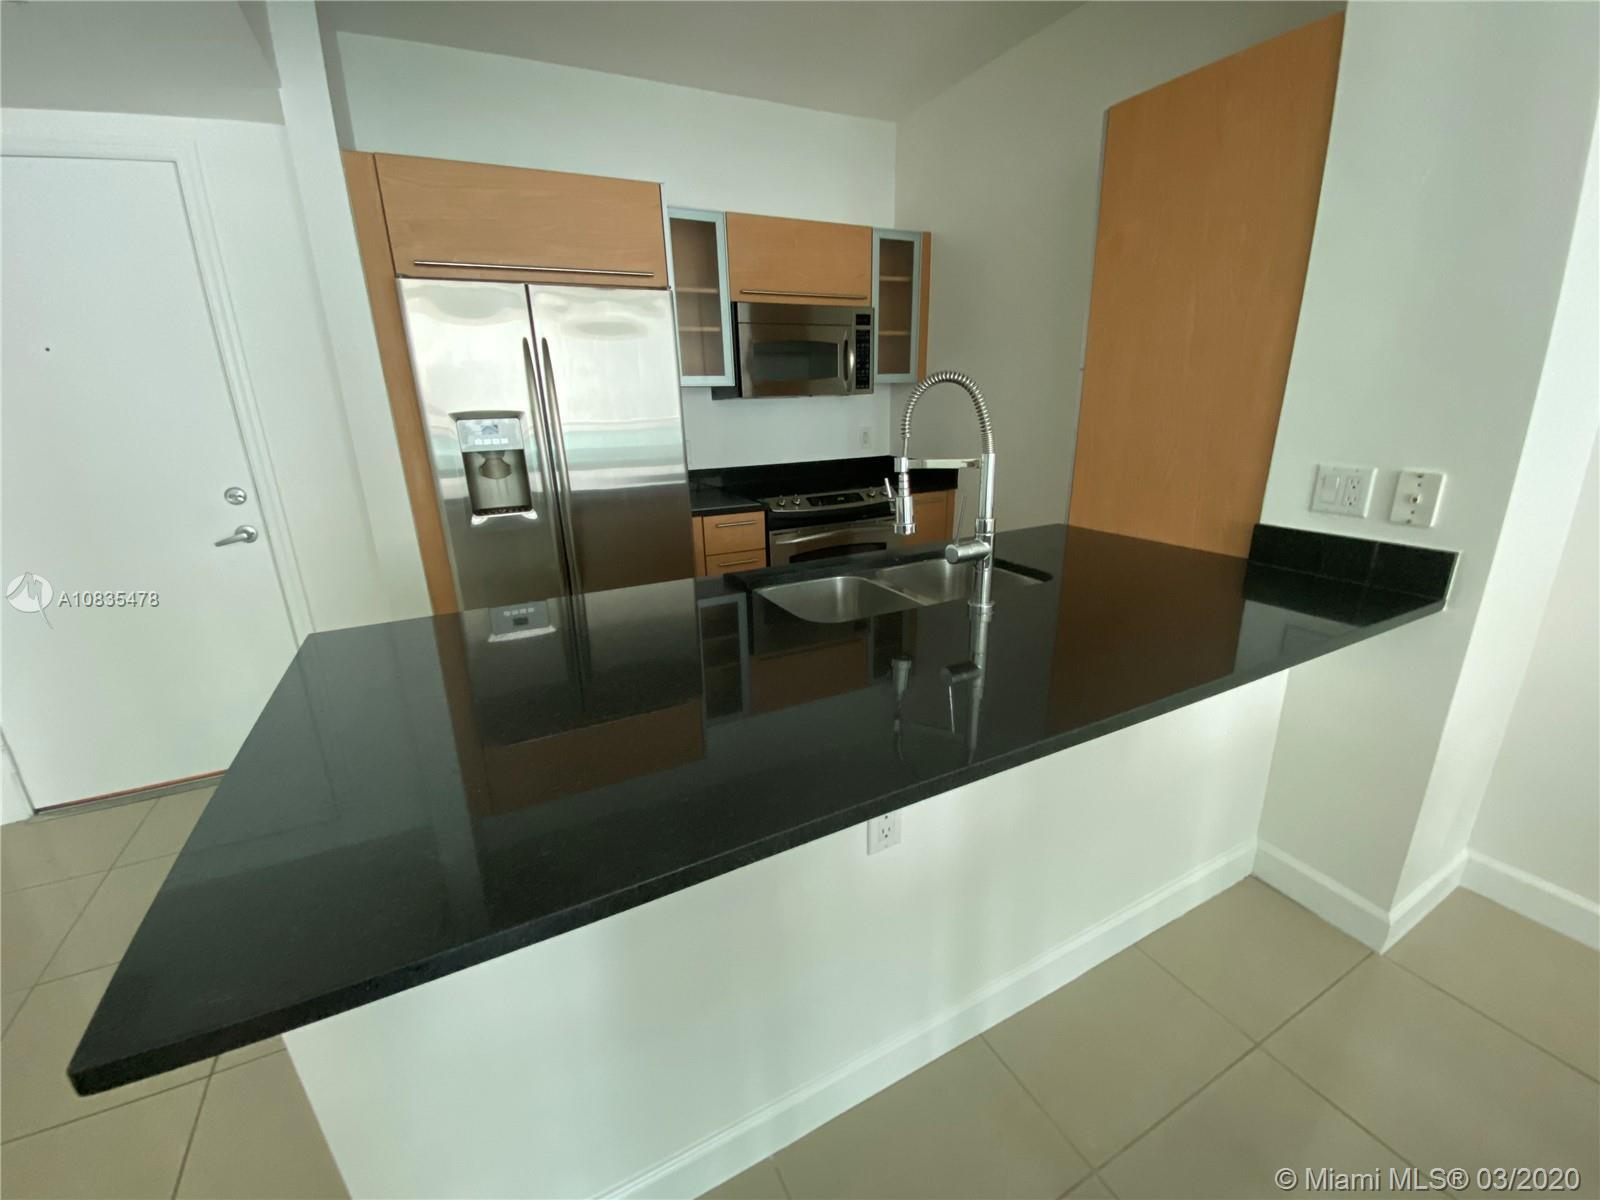 Beautiful 1/1 located in the heart of Brickell at The Plaza! Low maintenance fee. Spacious bedroom w